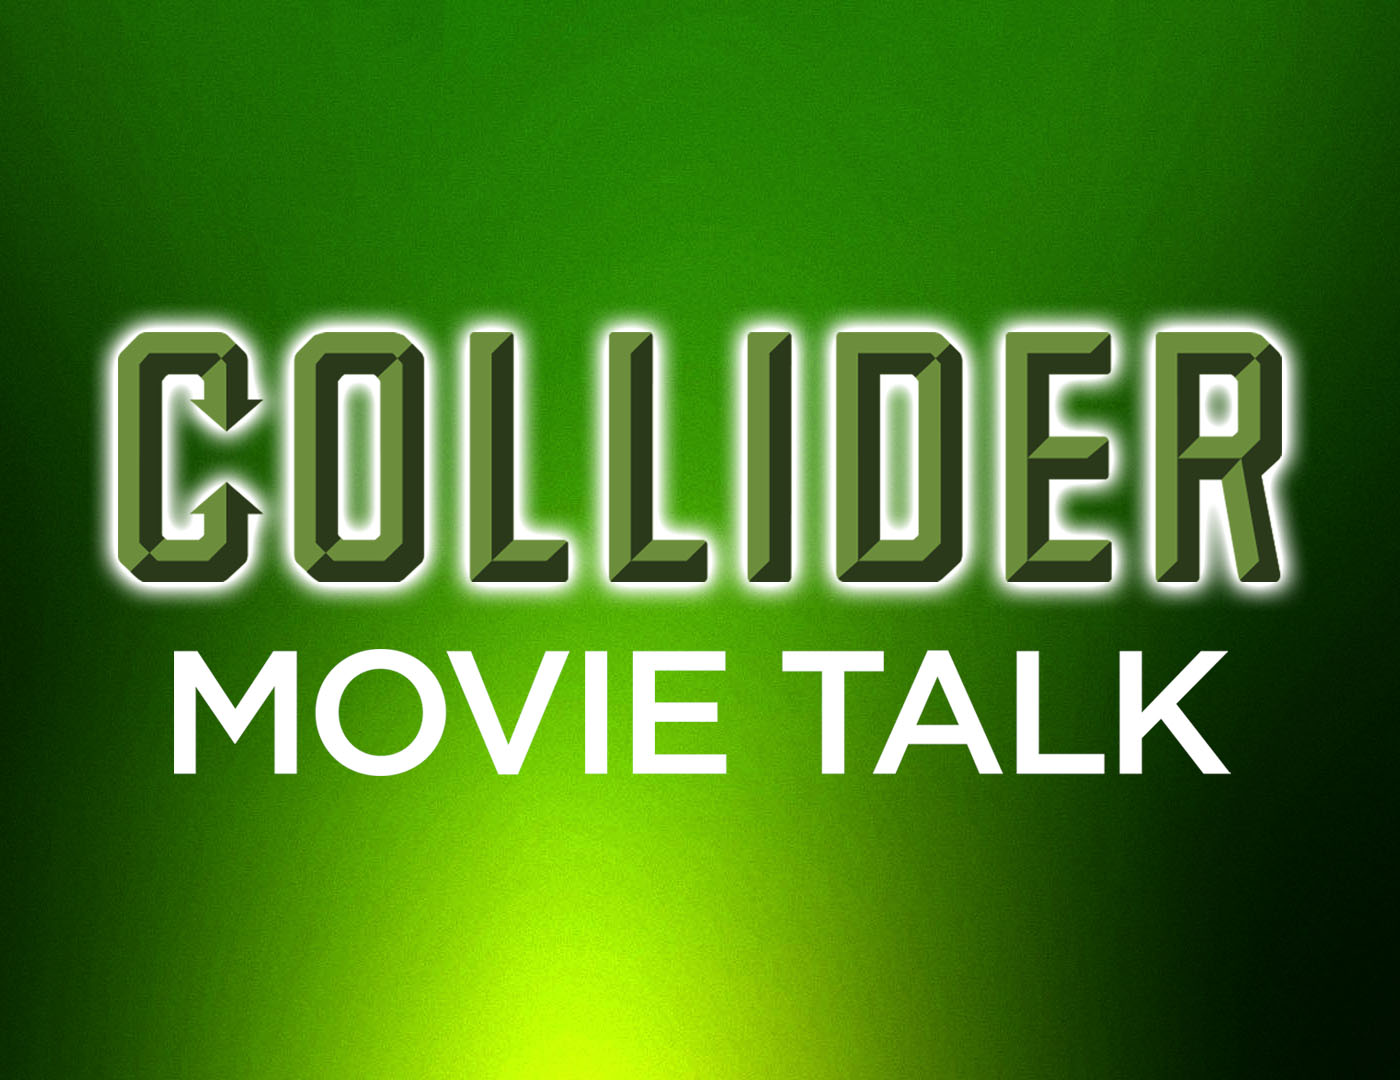 Collider Movie Talk - John Campea's Farewell Show, James Mangold to Helm 20,000 Leagues Under the Sea